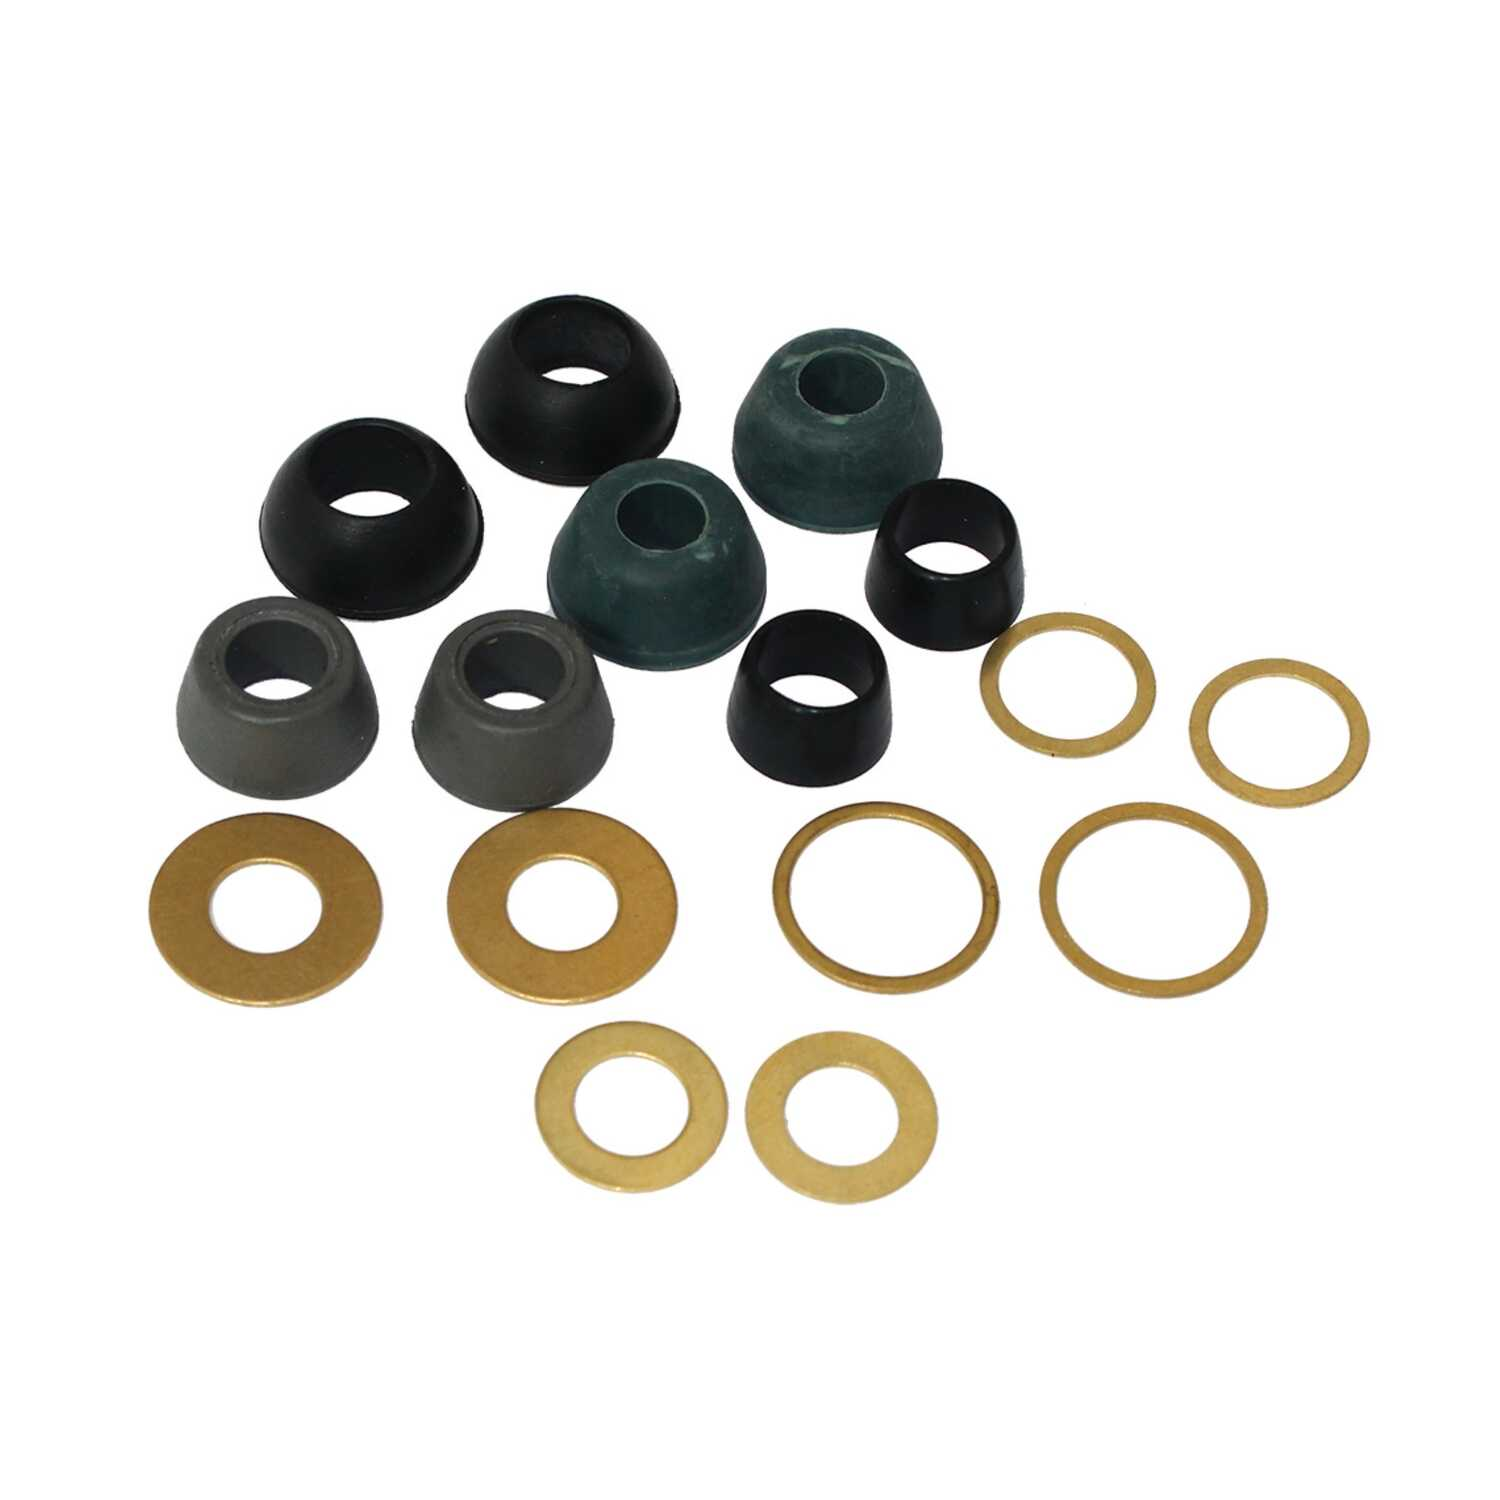 Ace  assort in. Dia. Rubber  Cone Washer and Ring Assortment  5